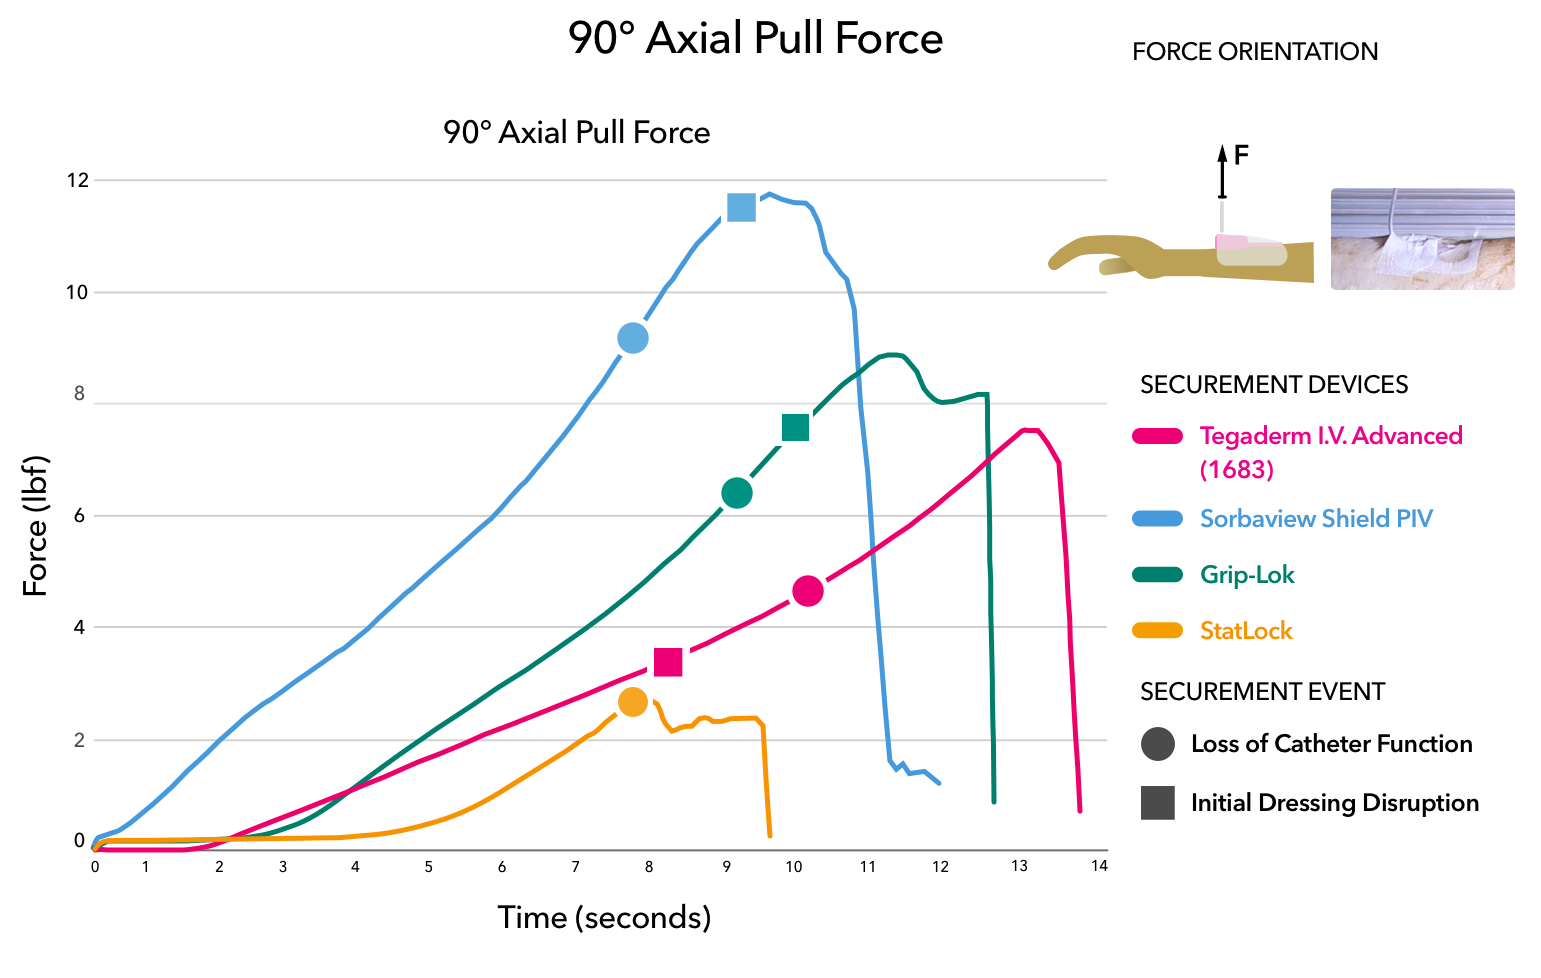 90 degree axial pull force test results